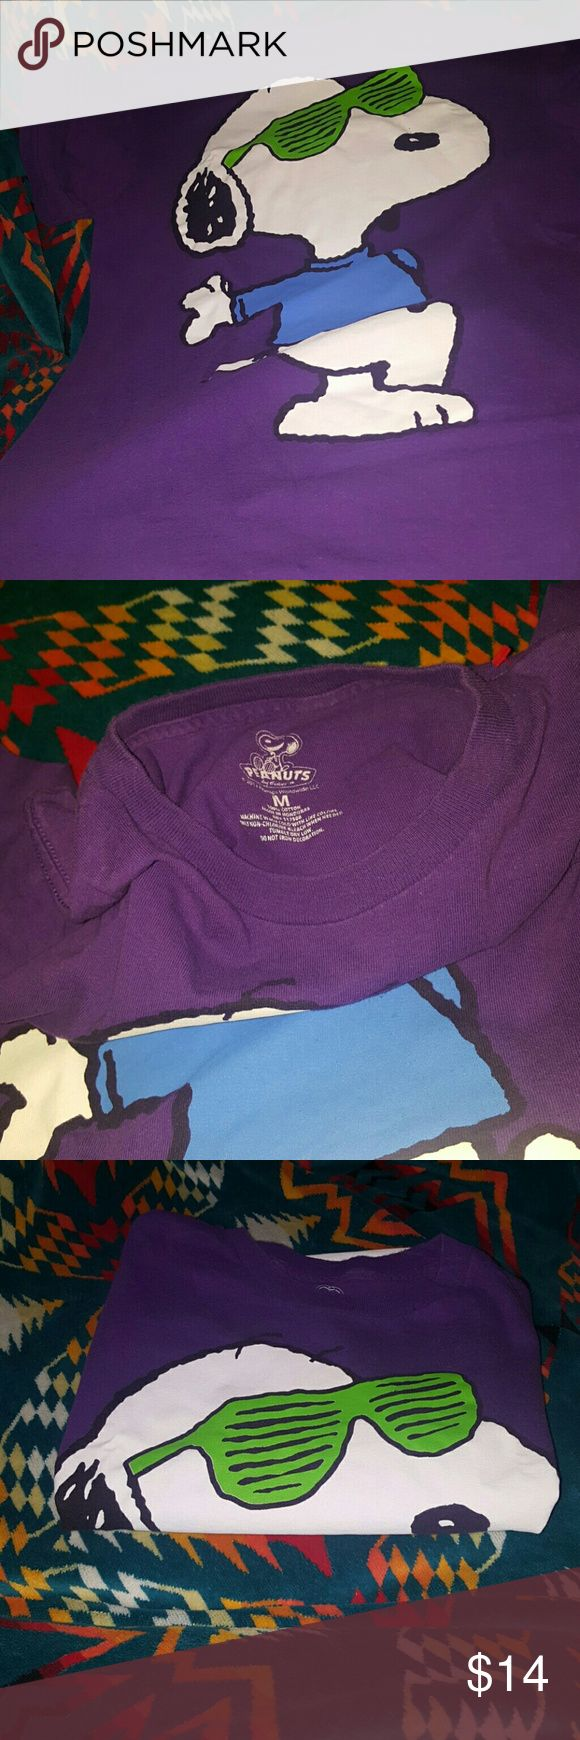 SNOOPY STUNNA SHADES T SHIRT PURPLE SNOOPY T SHIRT MEDIUM PEANUTS BRAND T SHIRT PURPLE STUNNA SHADES 100 % COTTON Peanuts Tops Tees - Short Sleeve